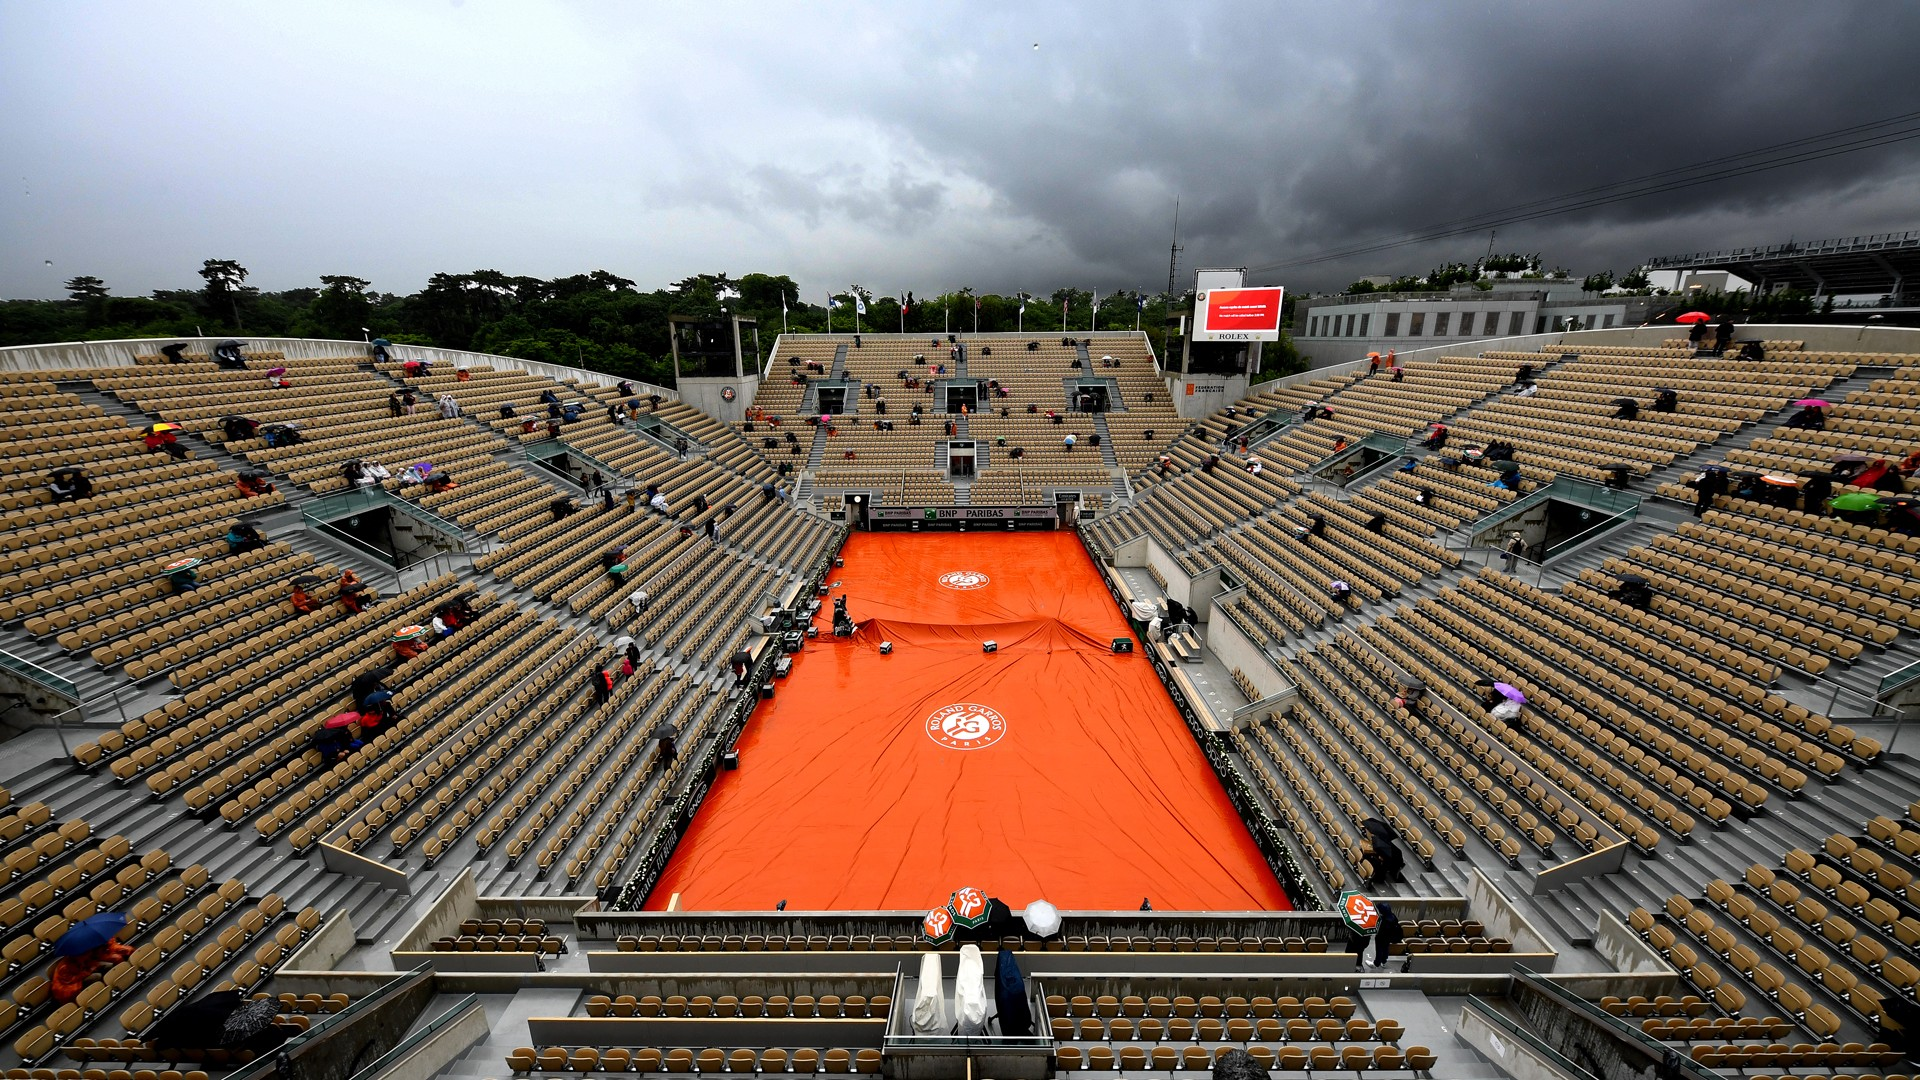 PARIS, FRANCE - JUNE 05: A general view inside Court Suzanne Lenglen as the court is covered during a rain delay during Day eleven of the 2019 French Open at Roland Garros on June 05, 2019 in Paris, France. (Photo by Clive Mason/Getty Images)